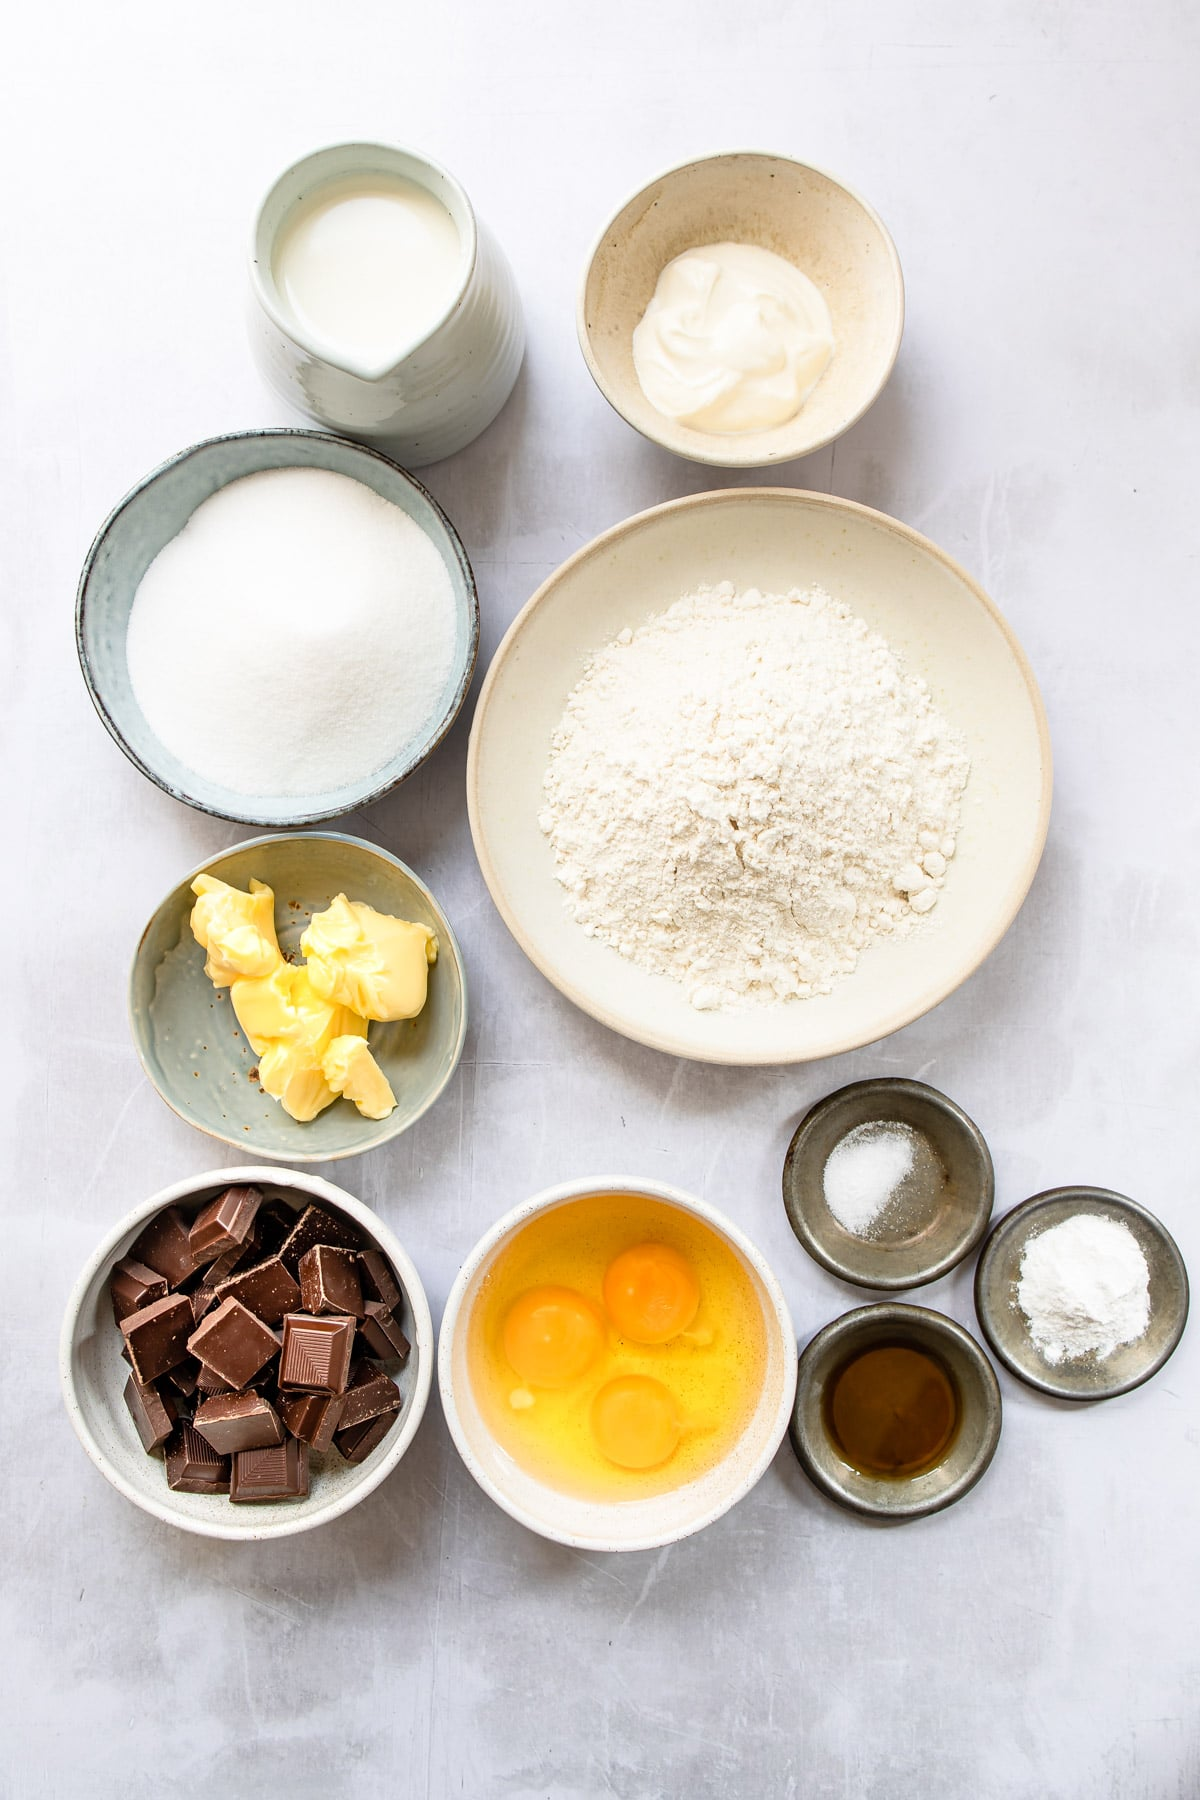 Ingredients for Boston cream pie cupcakes in dishes.